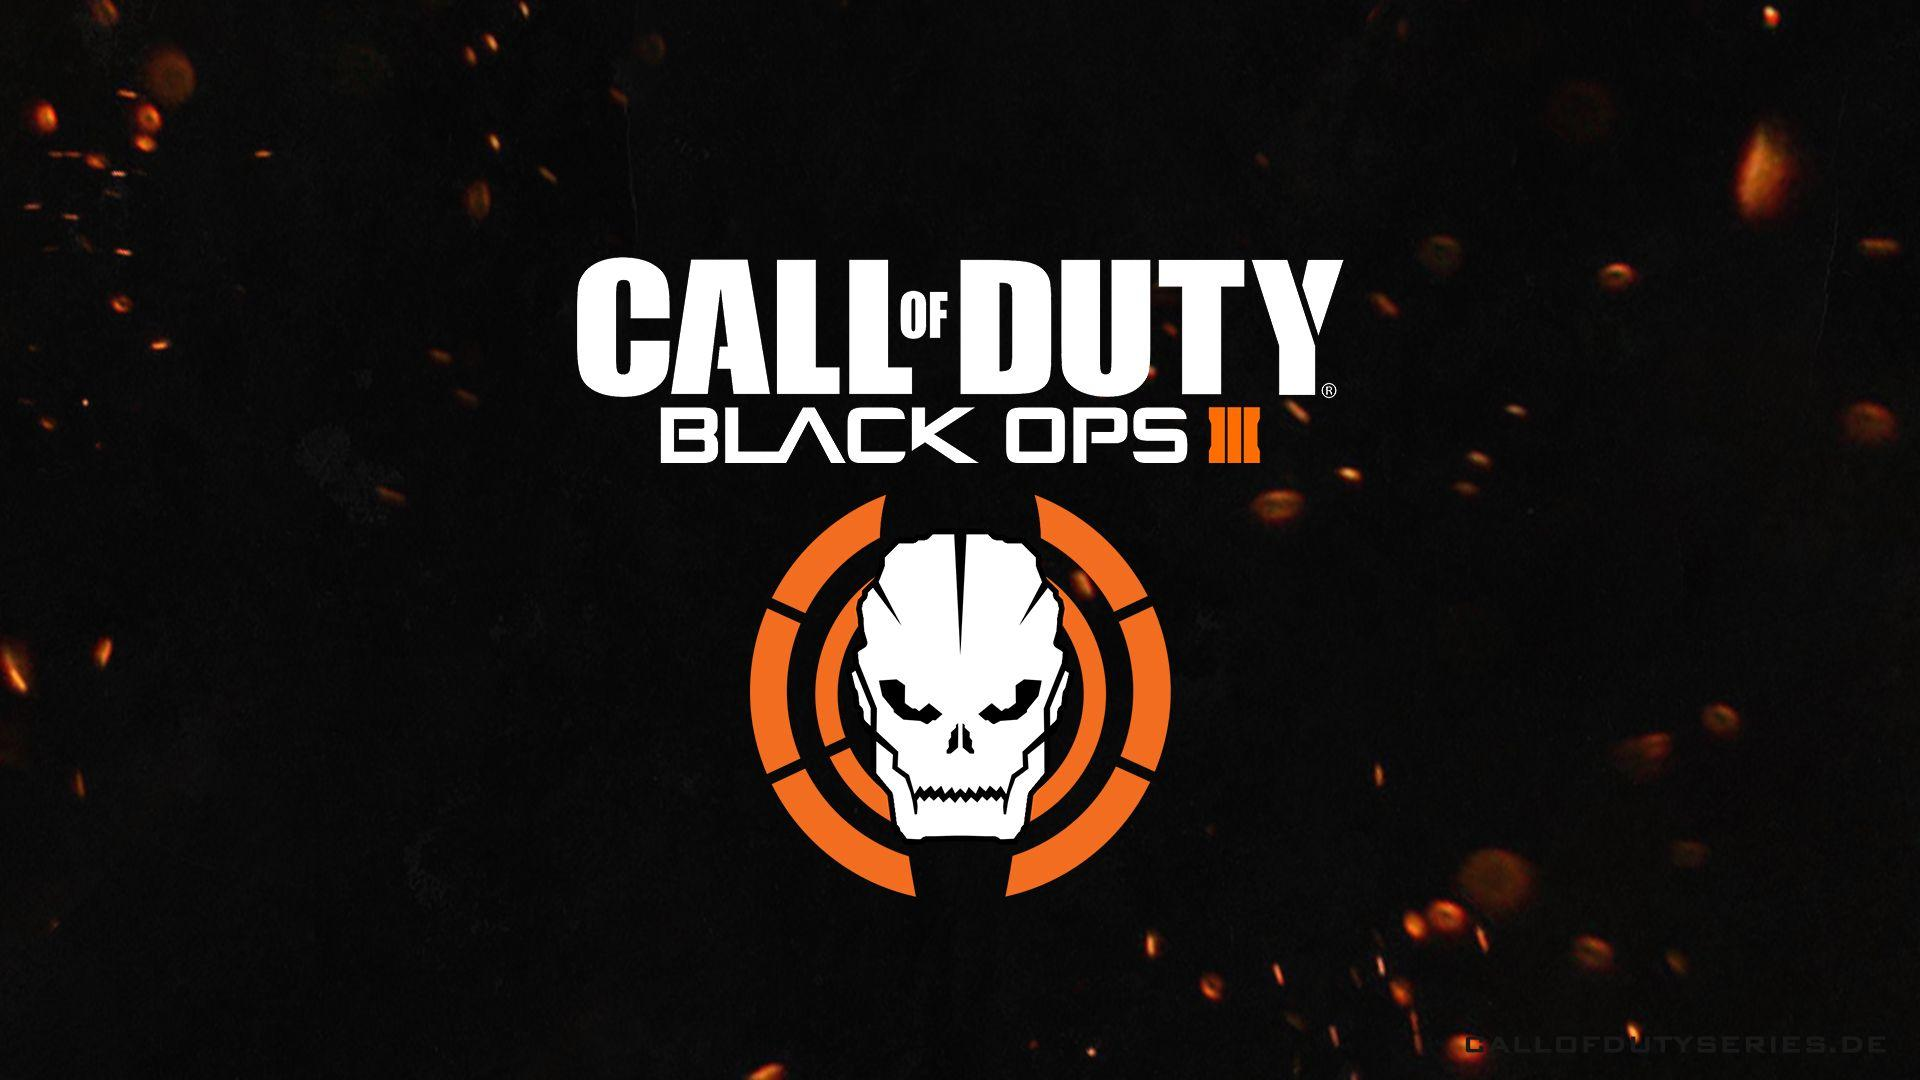 Call Of Duty Black Ops Iii Wallpapers Wallpaper Cave